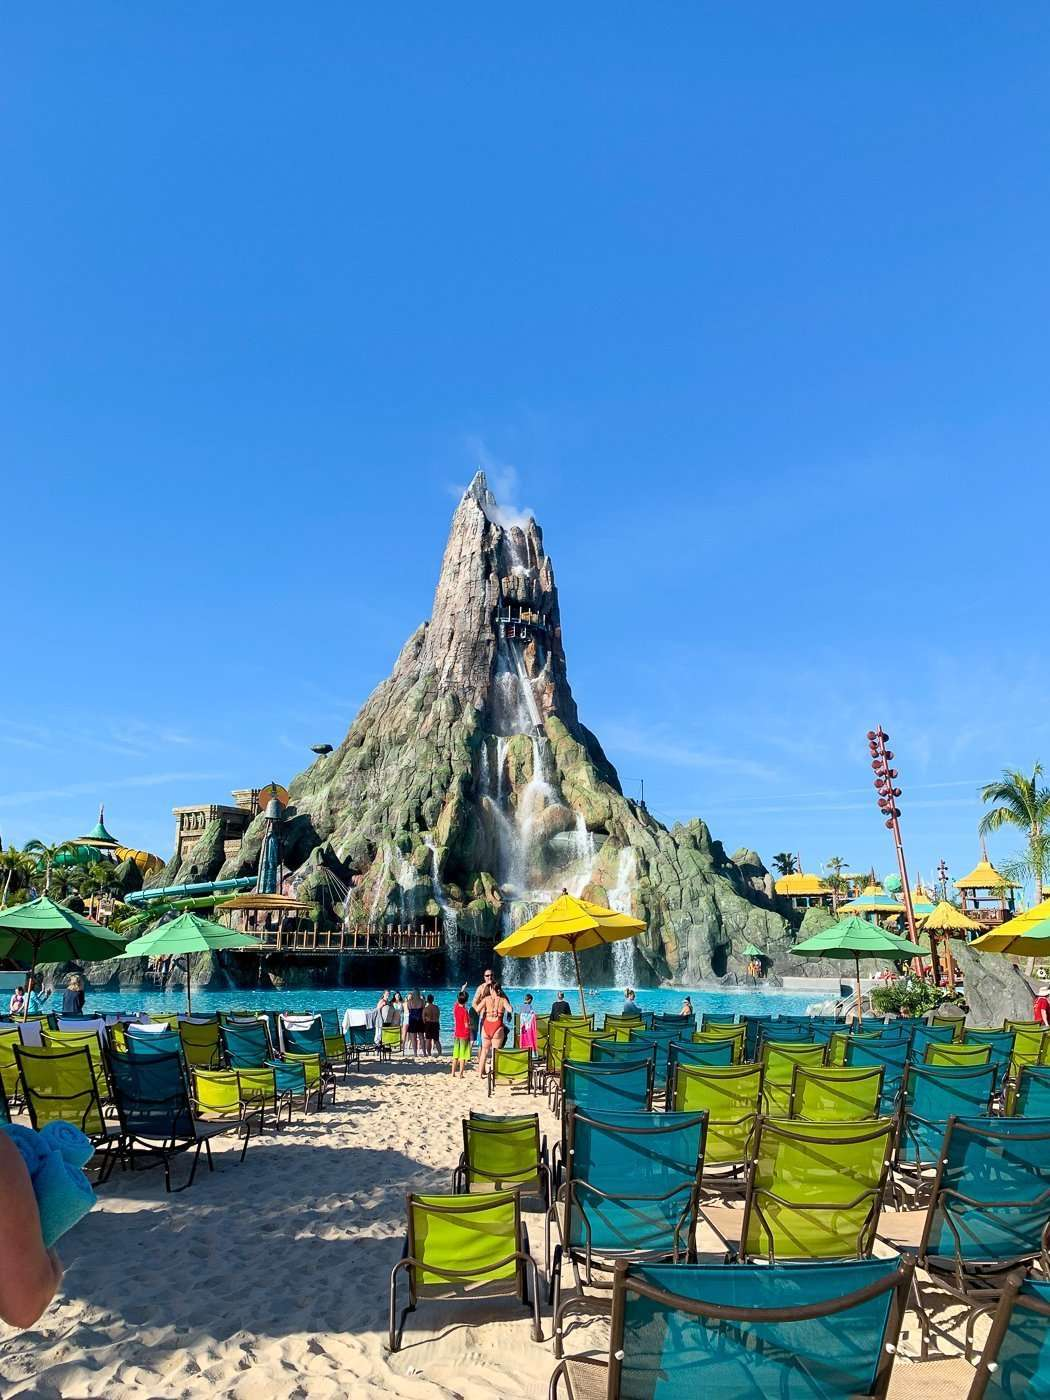 The Best Family Water Park is Volcano Bay at Universal Orlando picture of volcano and beach chairs